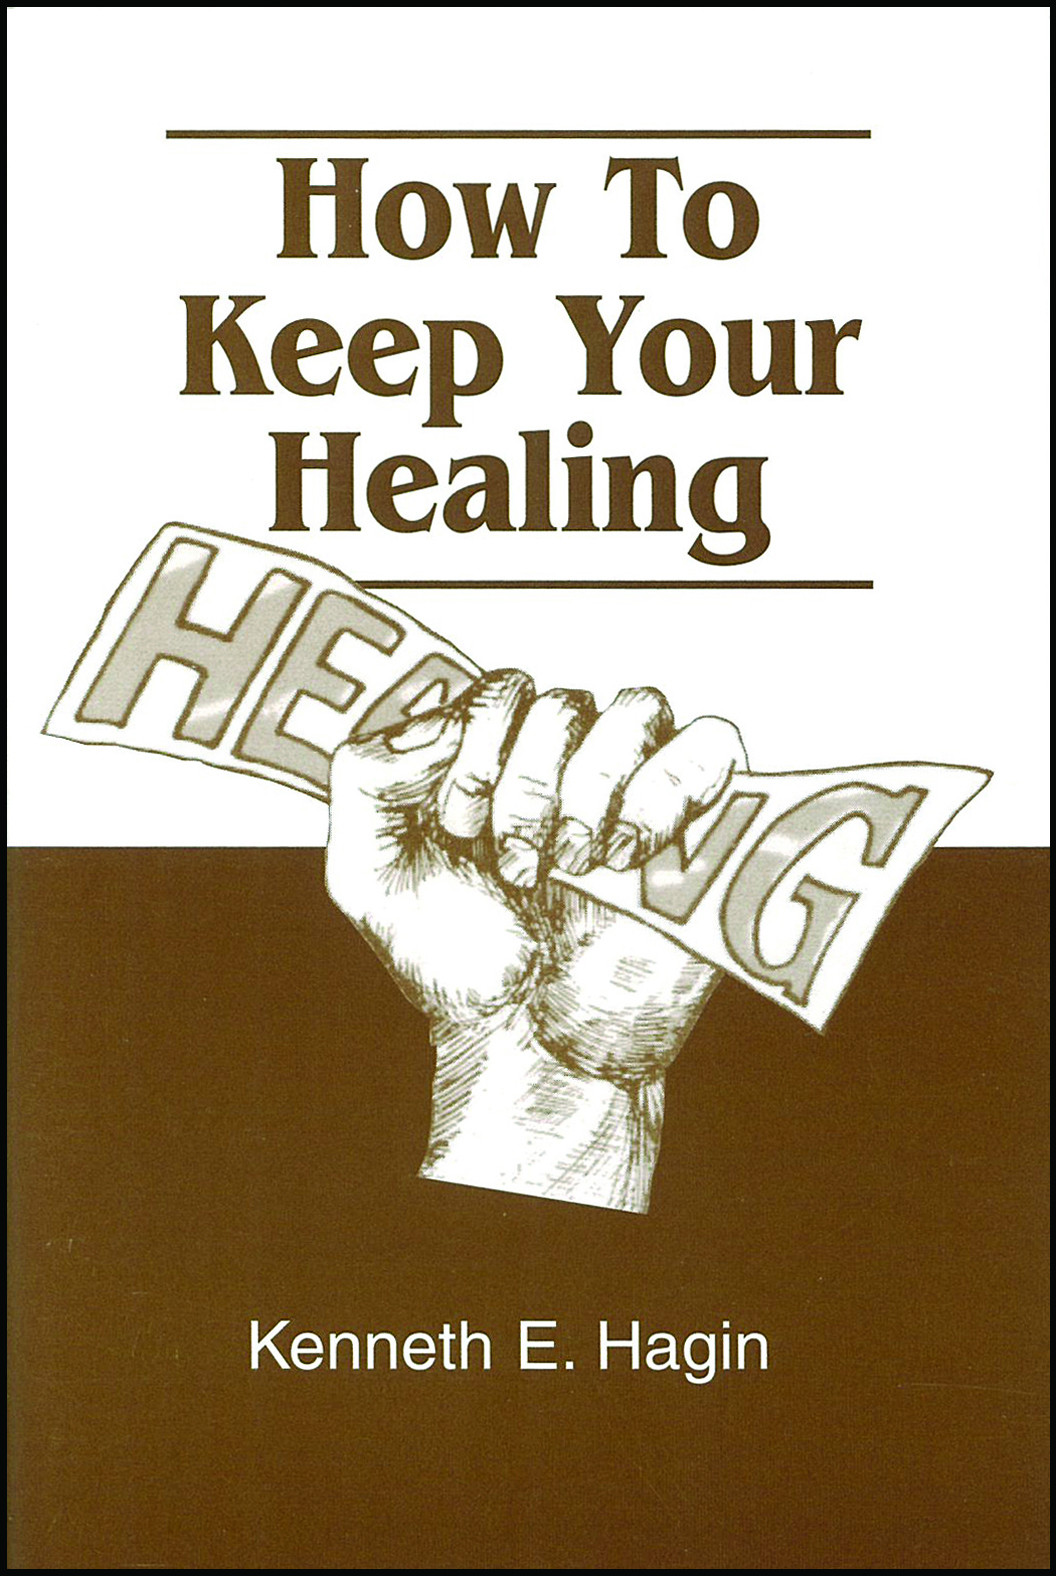 How To Keep Your Healing (Book)